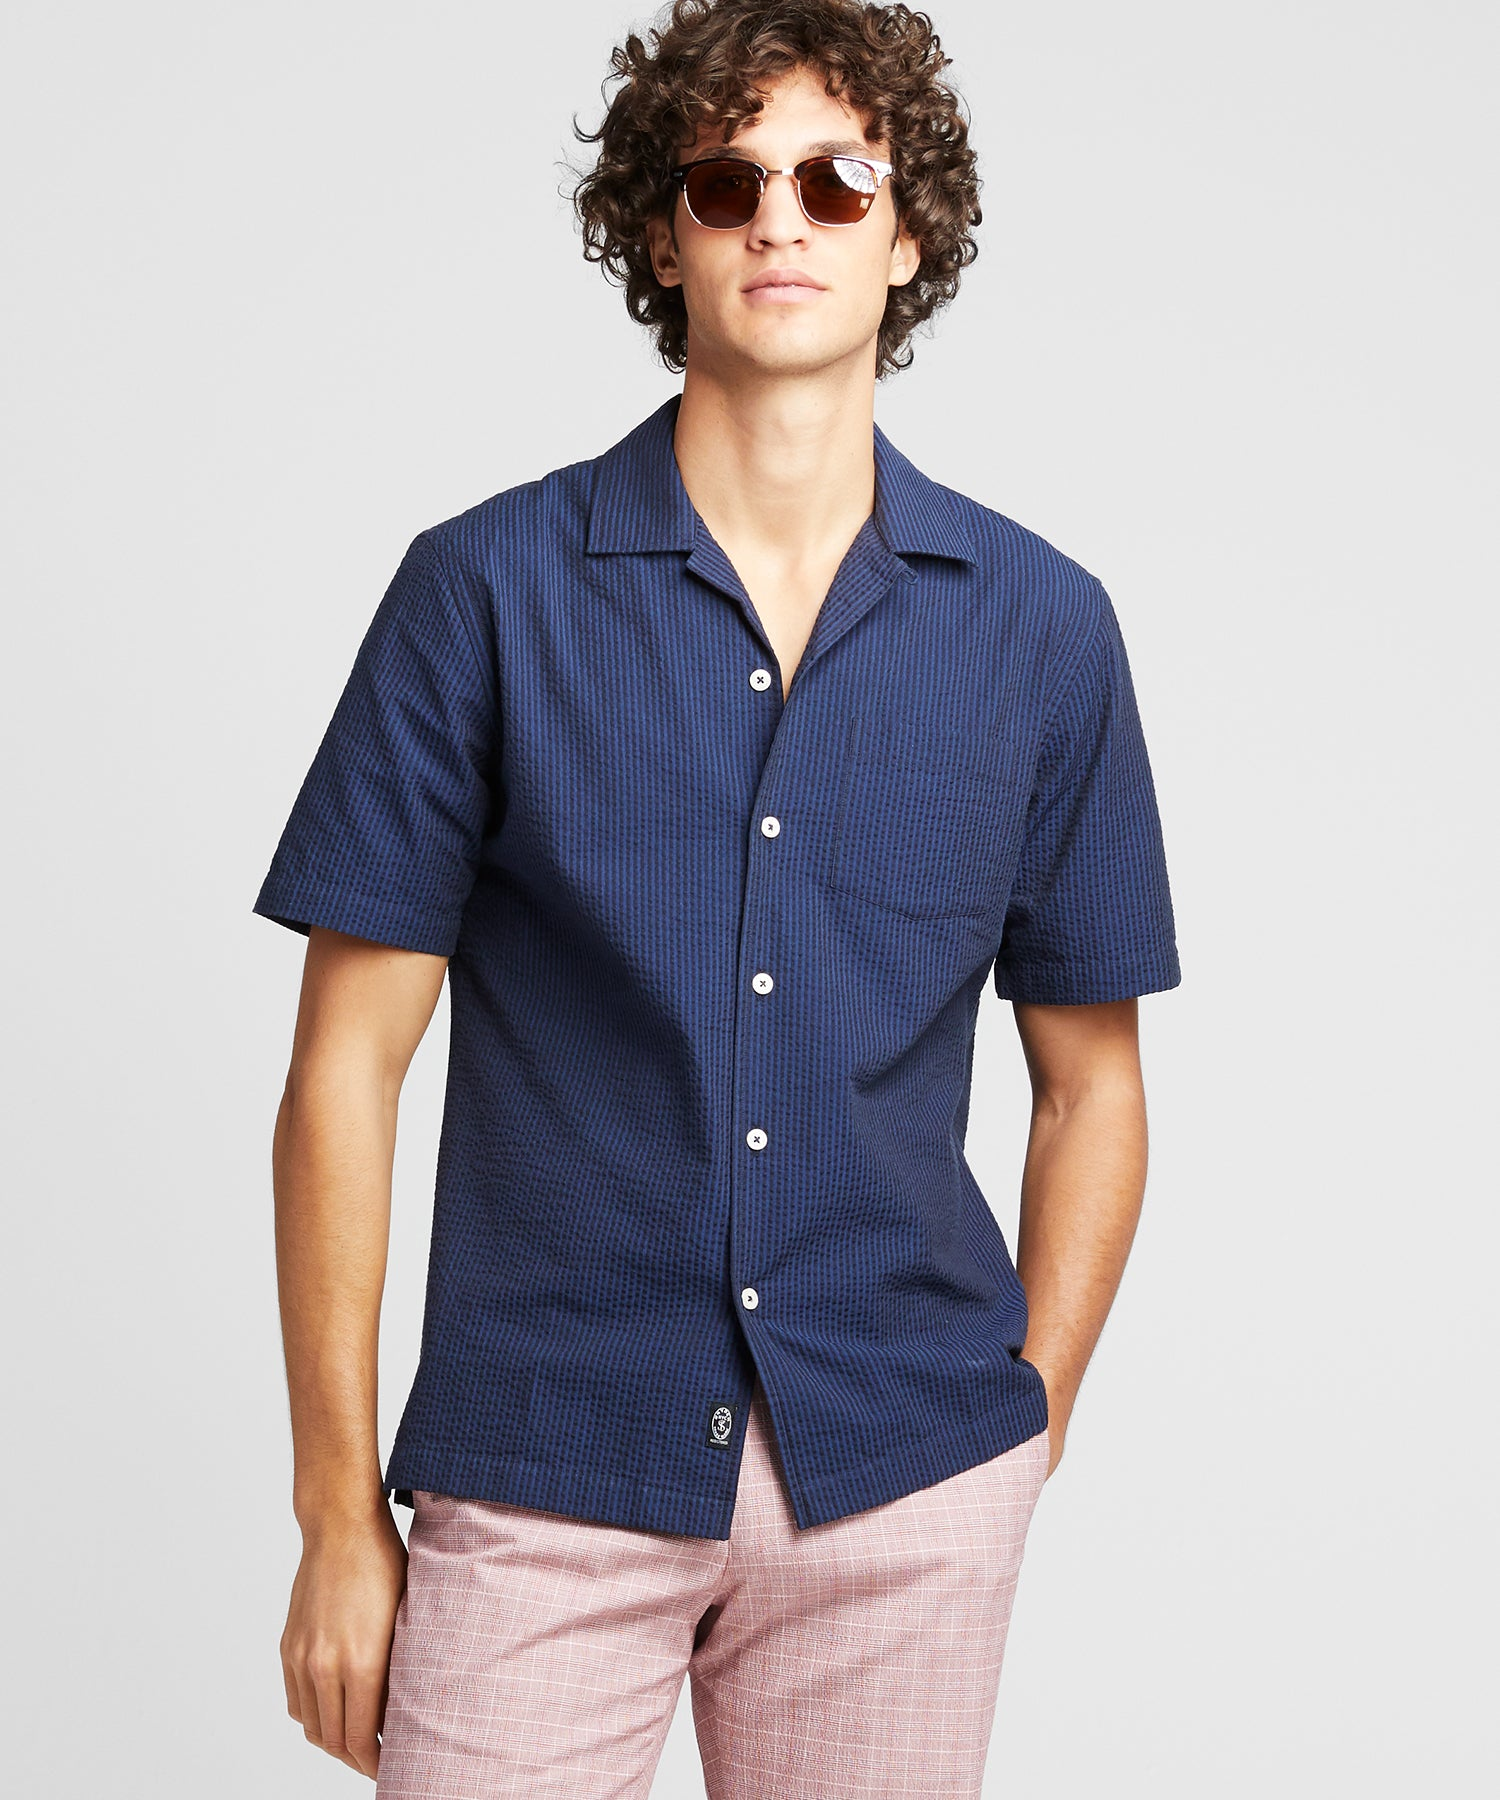 Camp Collar Seersucker Short Sleeve in Navy Black Stripe